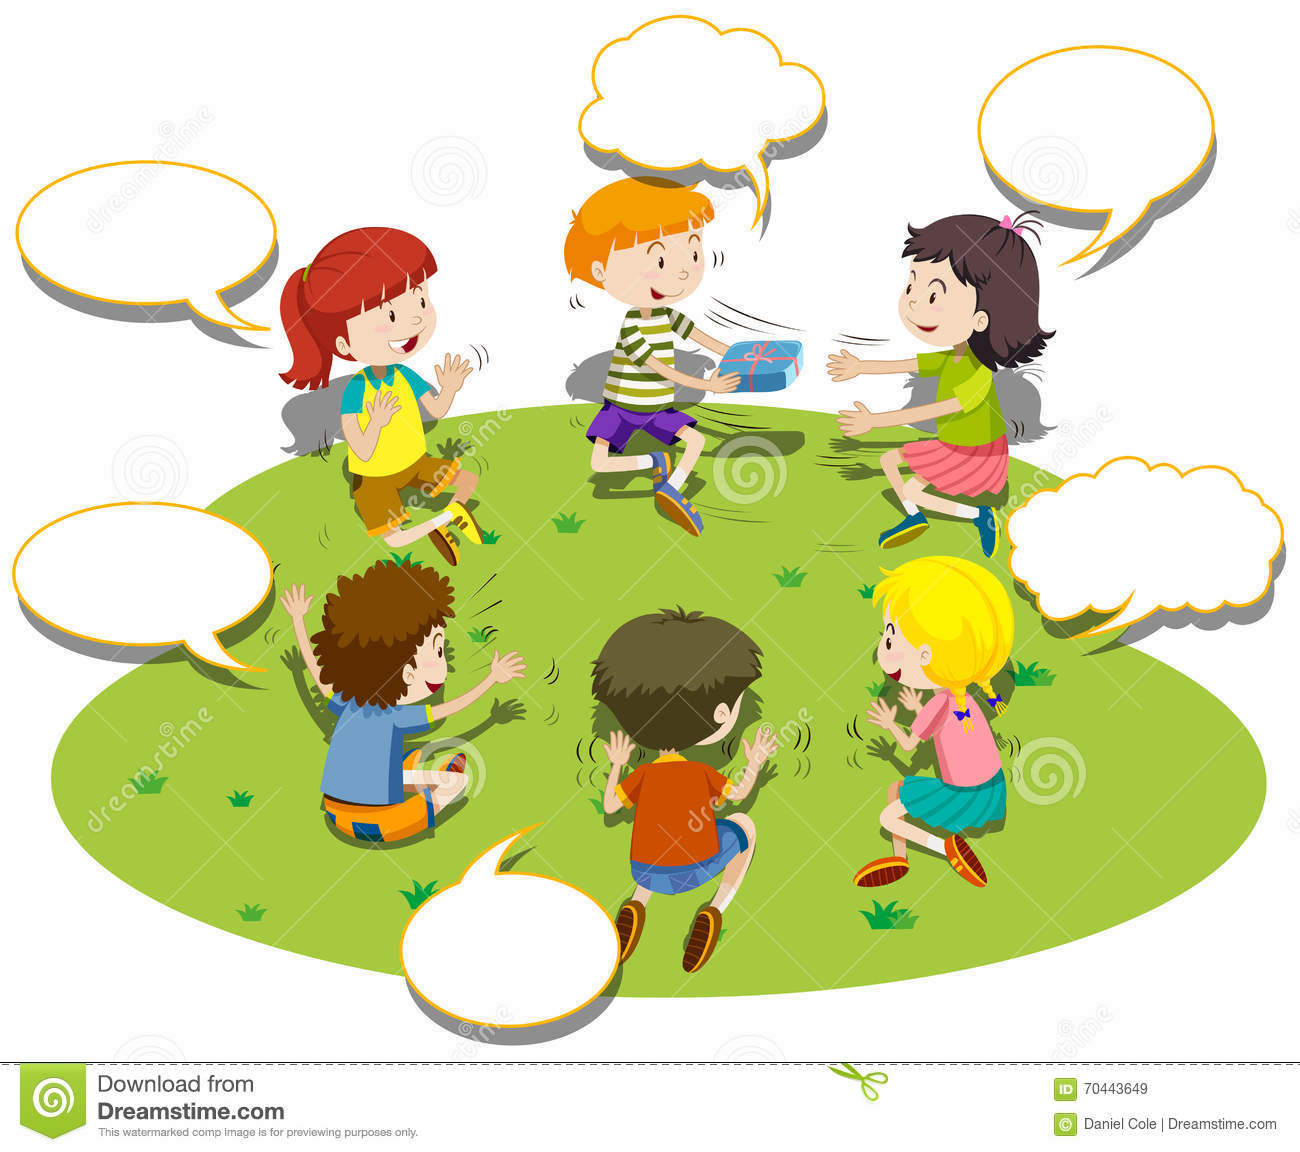 children sit in circle and play game stock vector image school bus clip art border school bus clip art download free